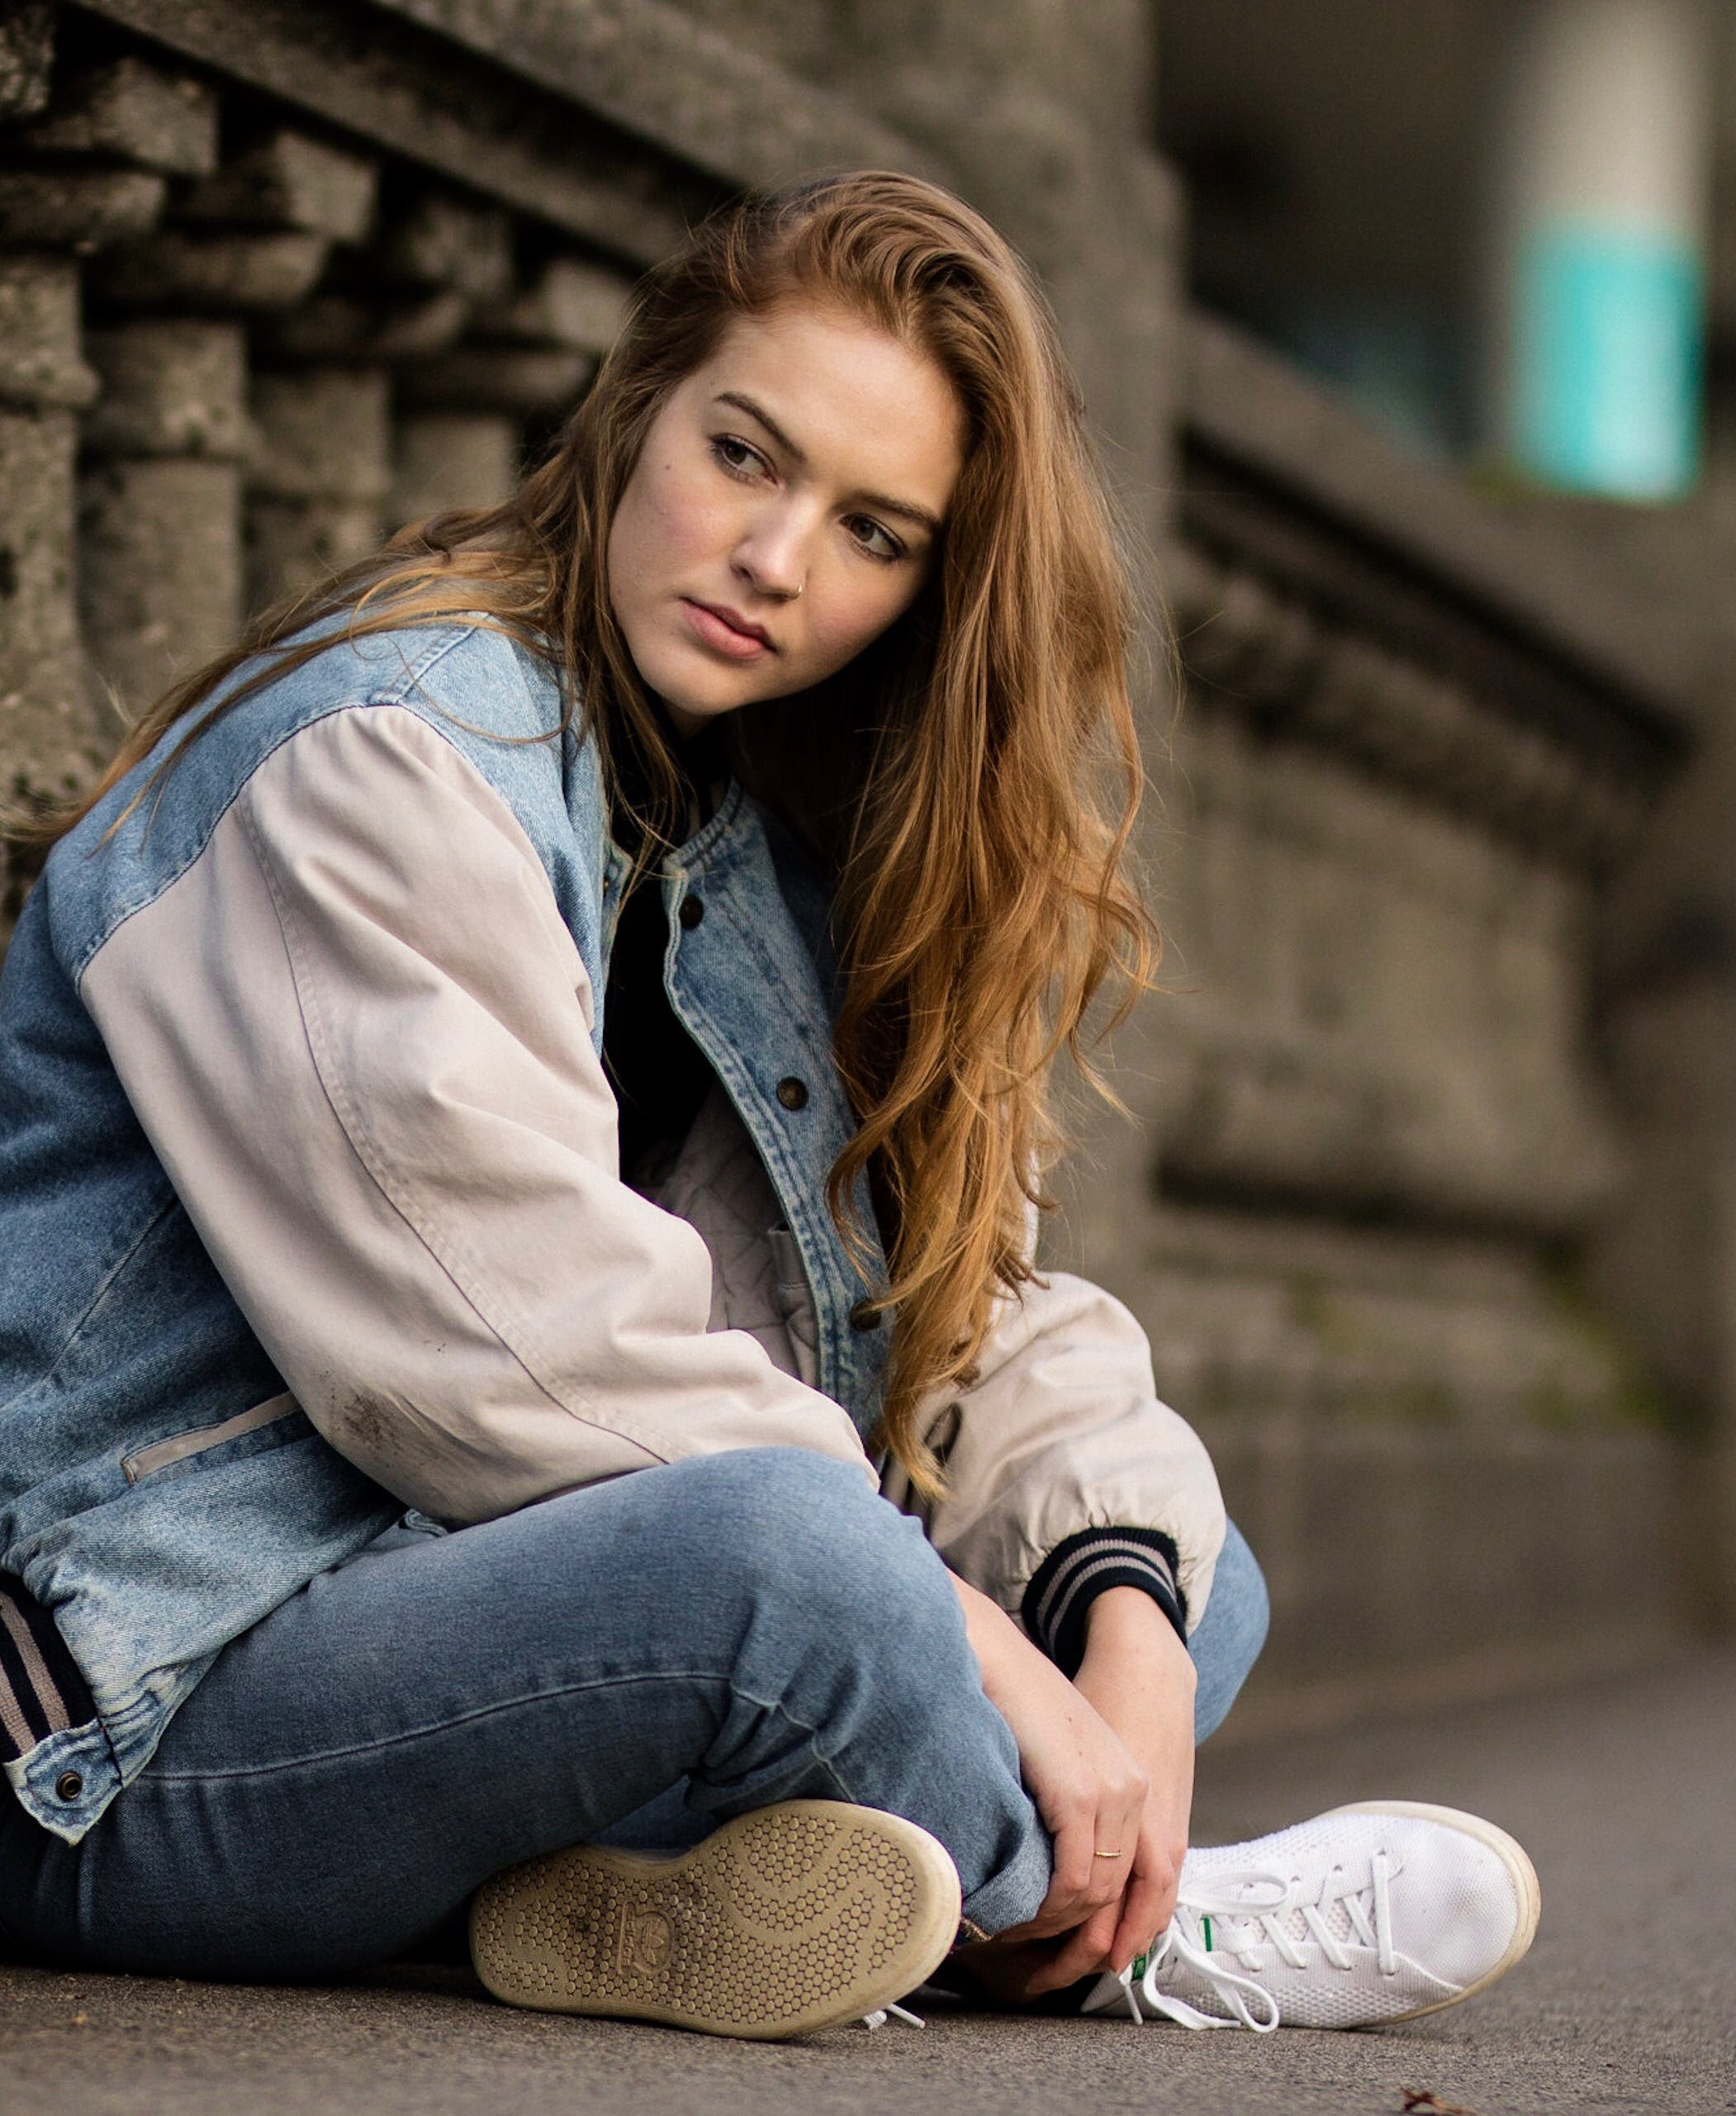 Brown Haired Woman Sitting Beside Gray Concrete Railings